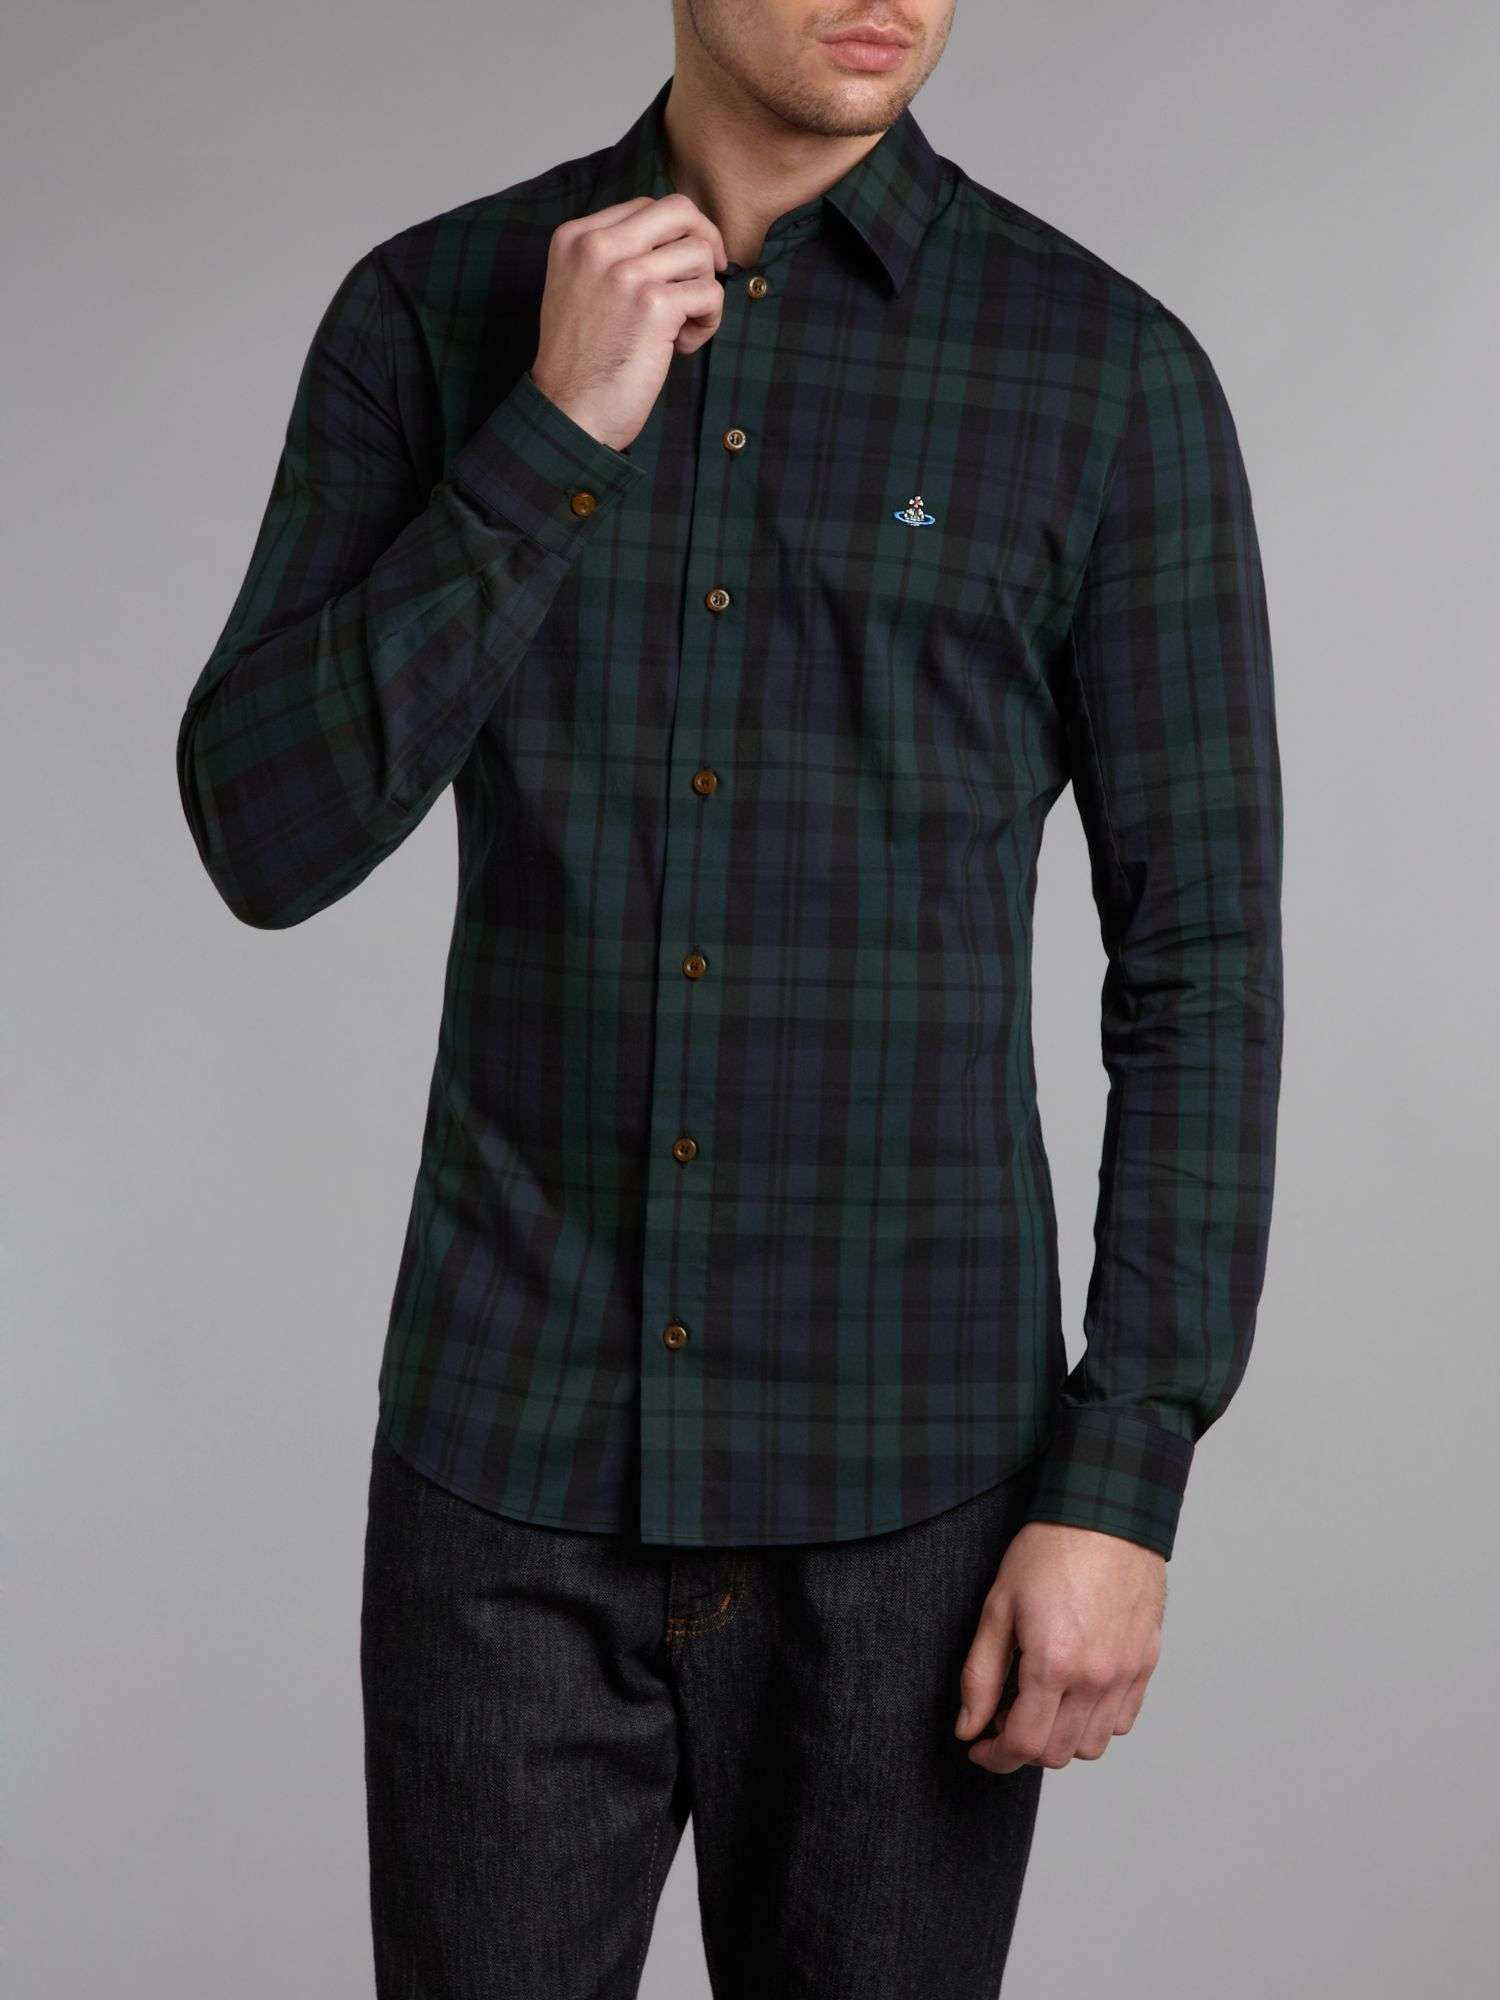 Mens Flannel Work Shirts